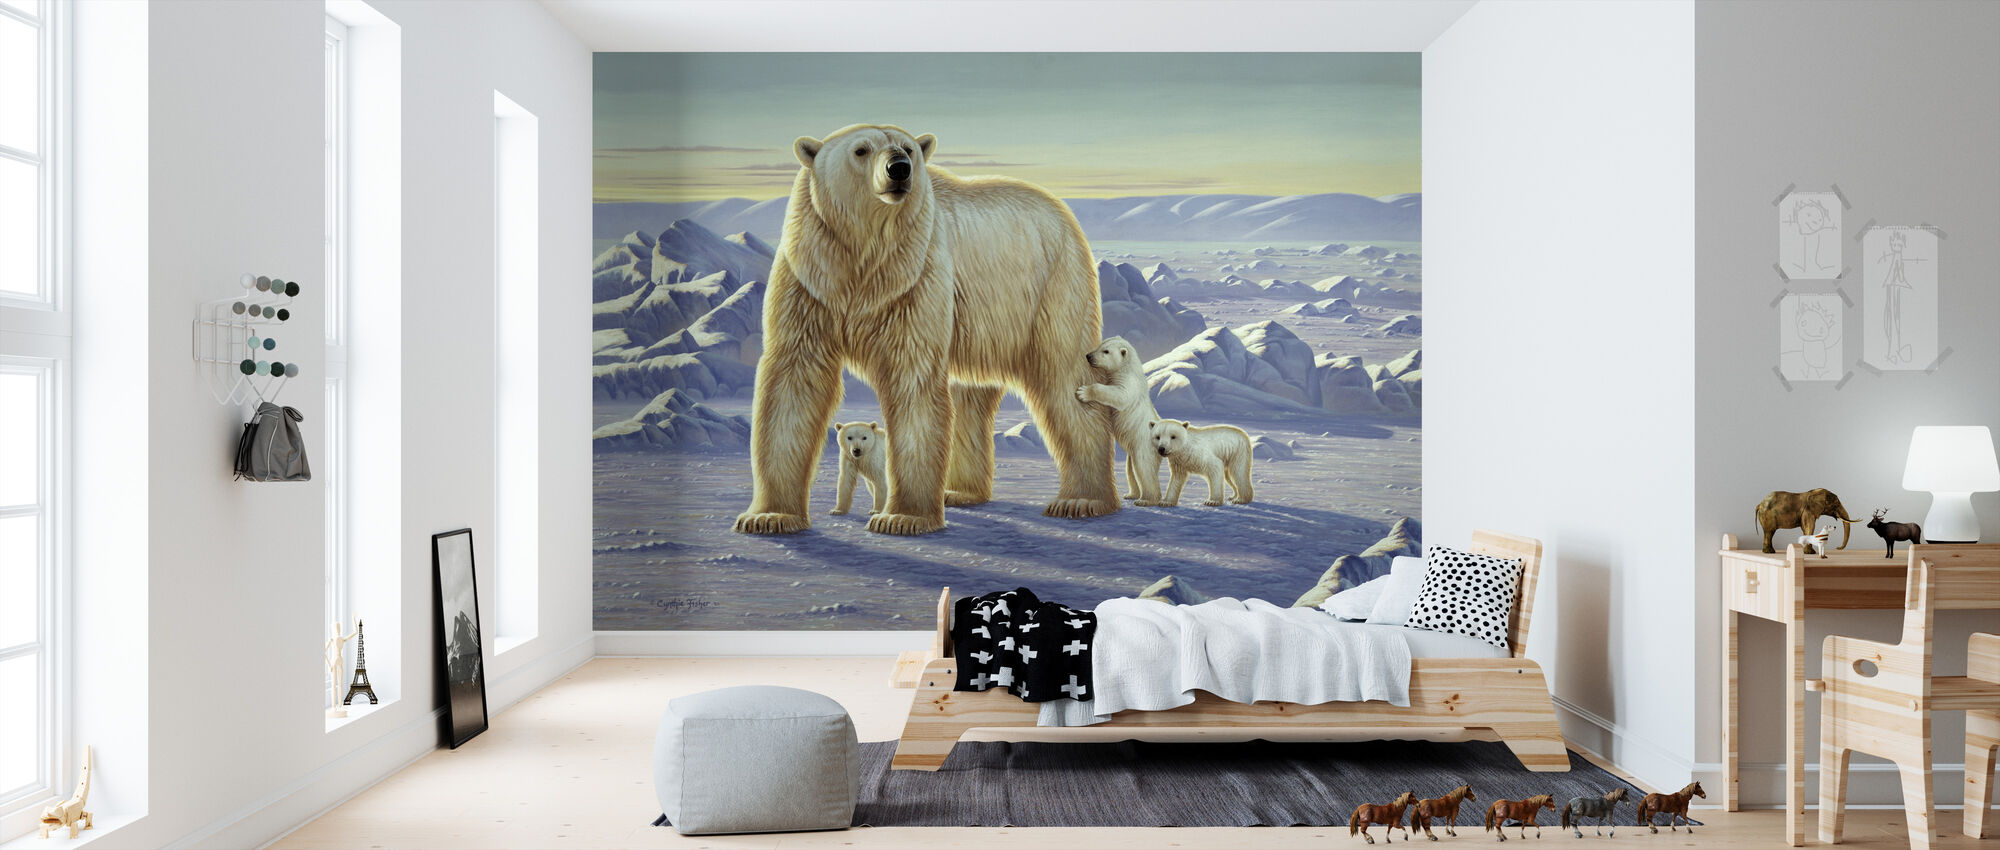 Polar Bear with Cubs - Wallpaper - Kids Room